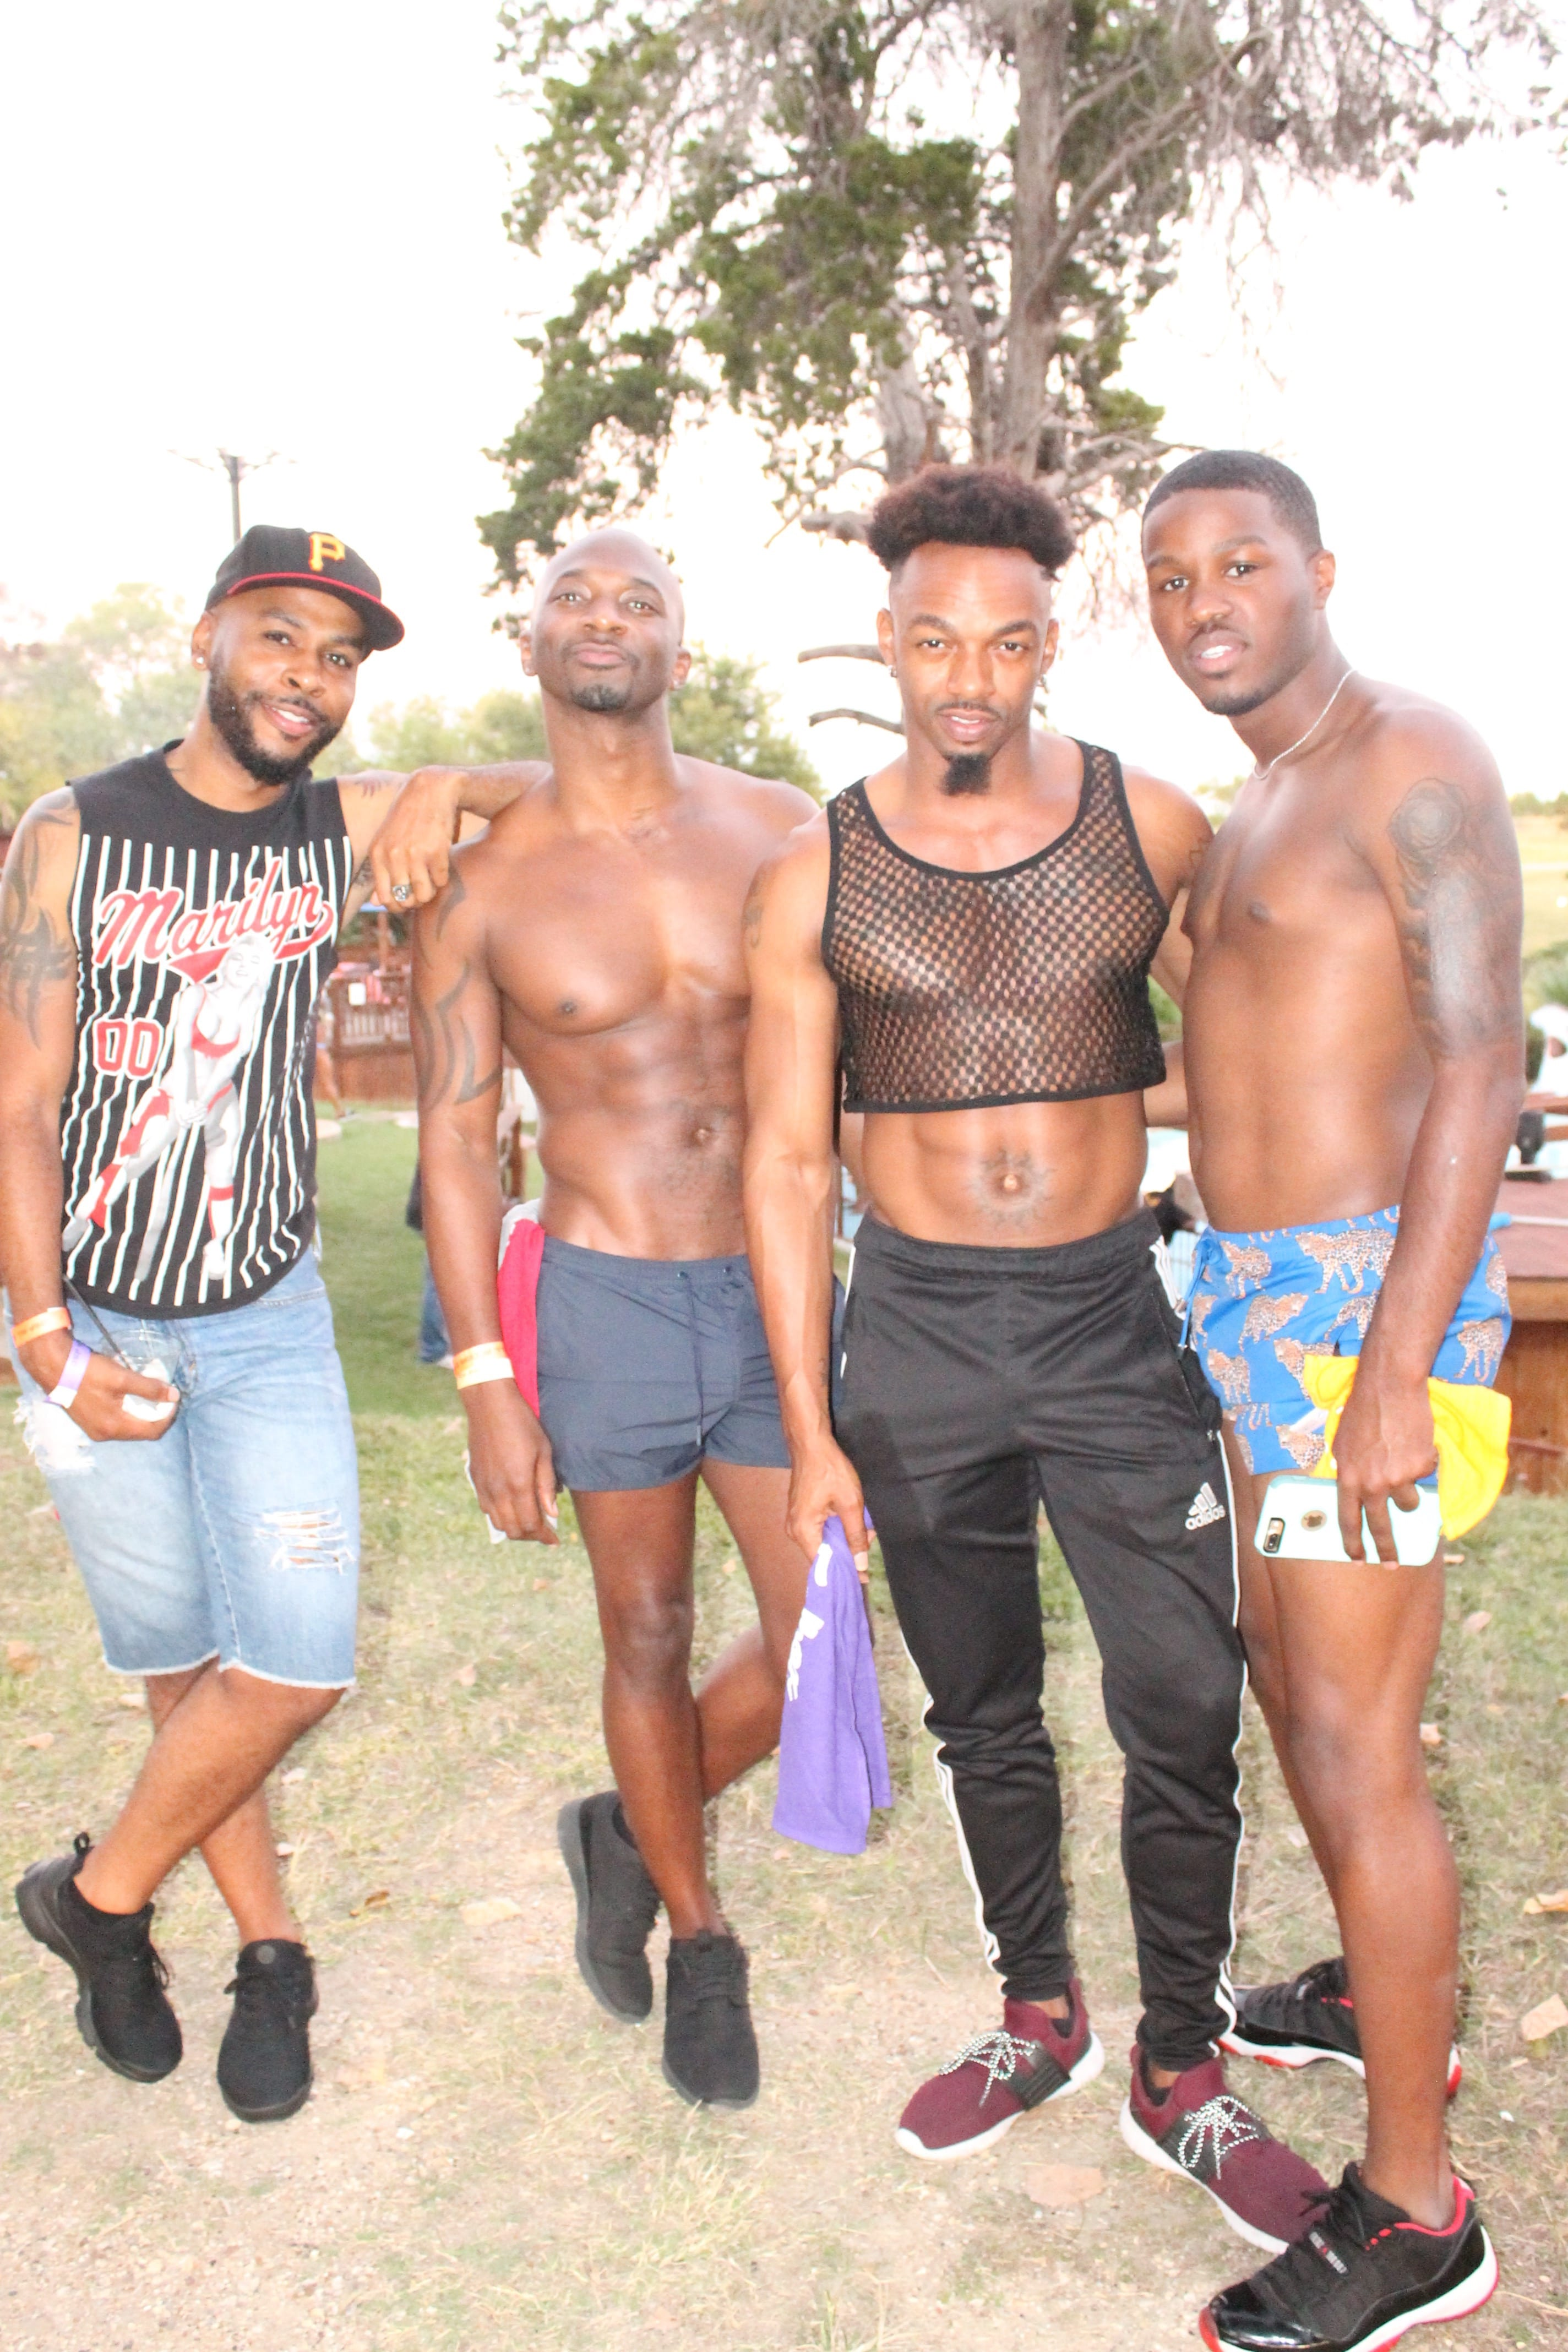 PHOTOS: Scenes from Dallas Black Pride